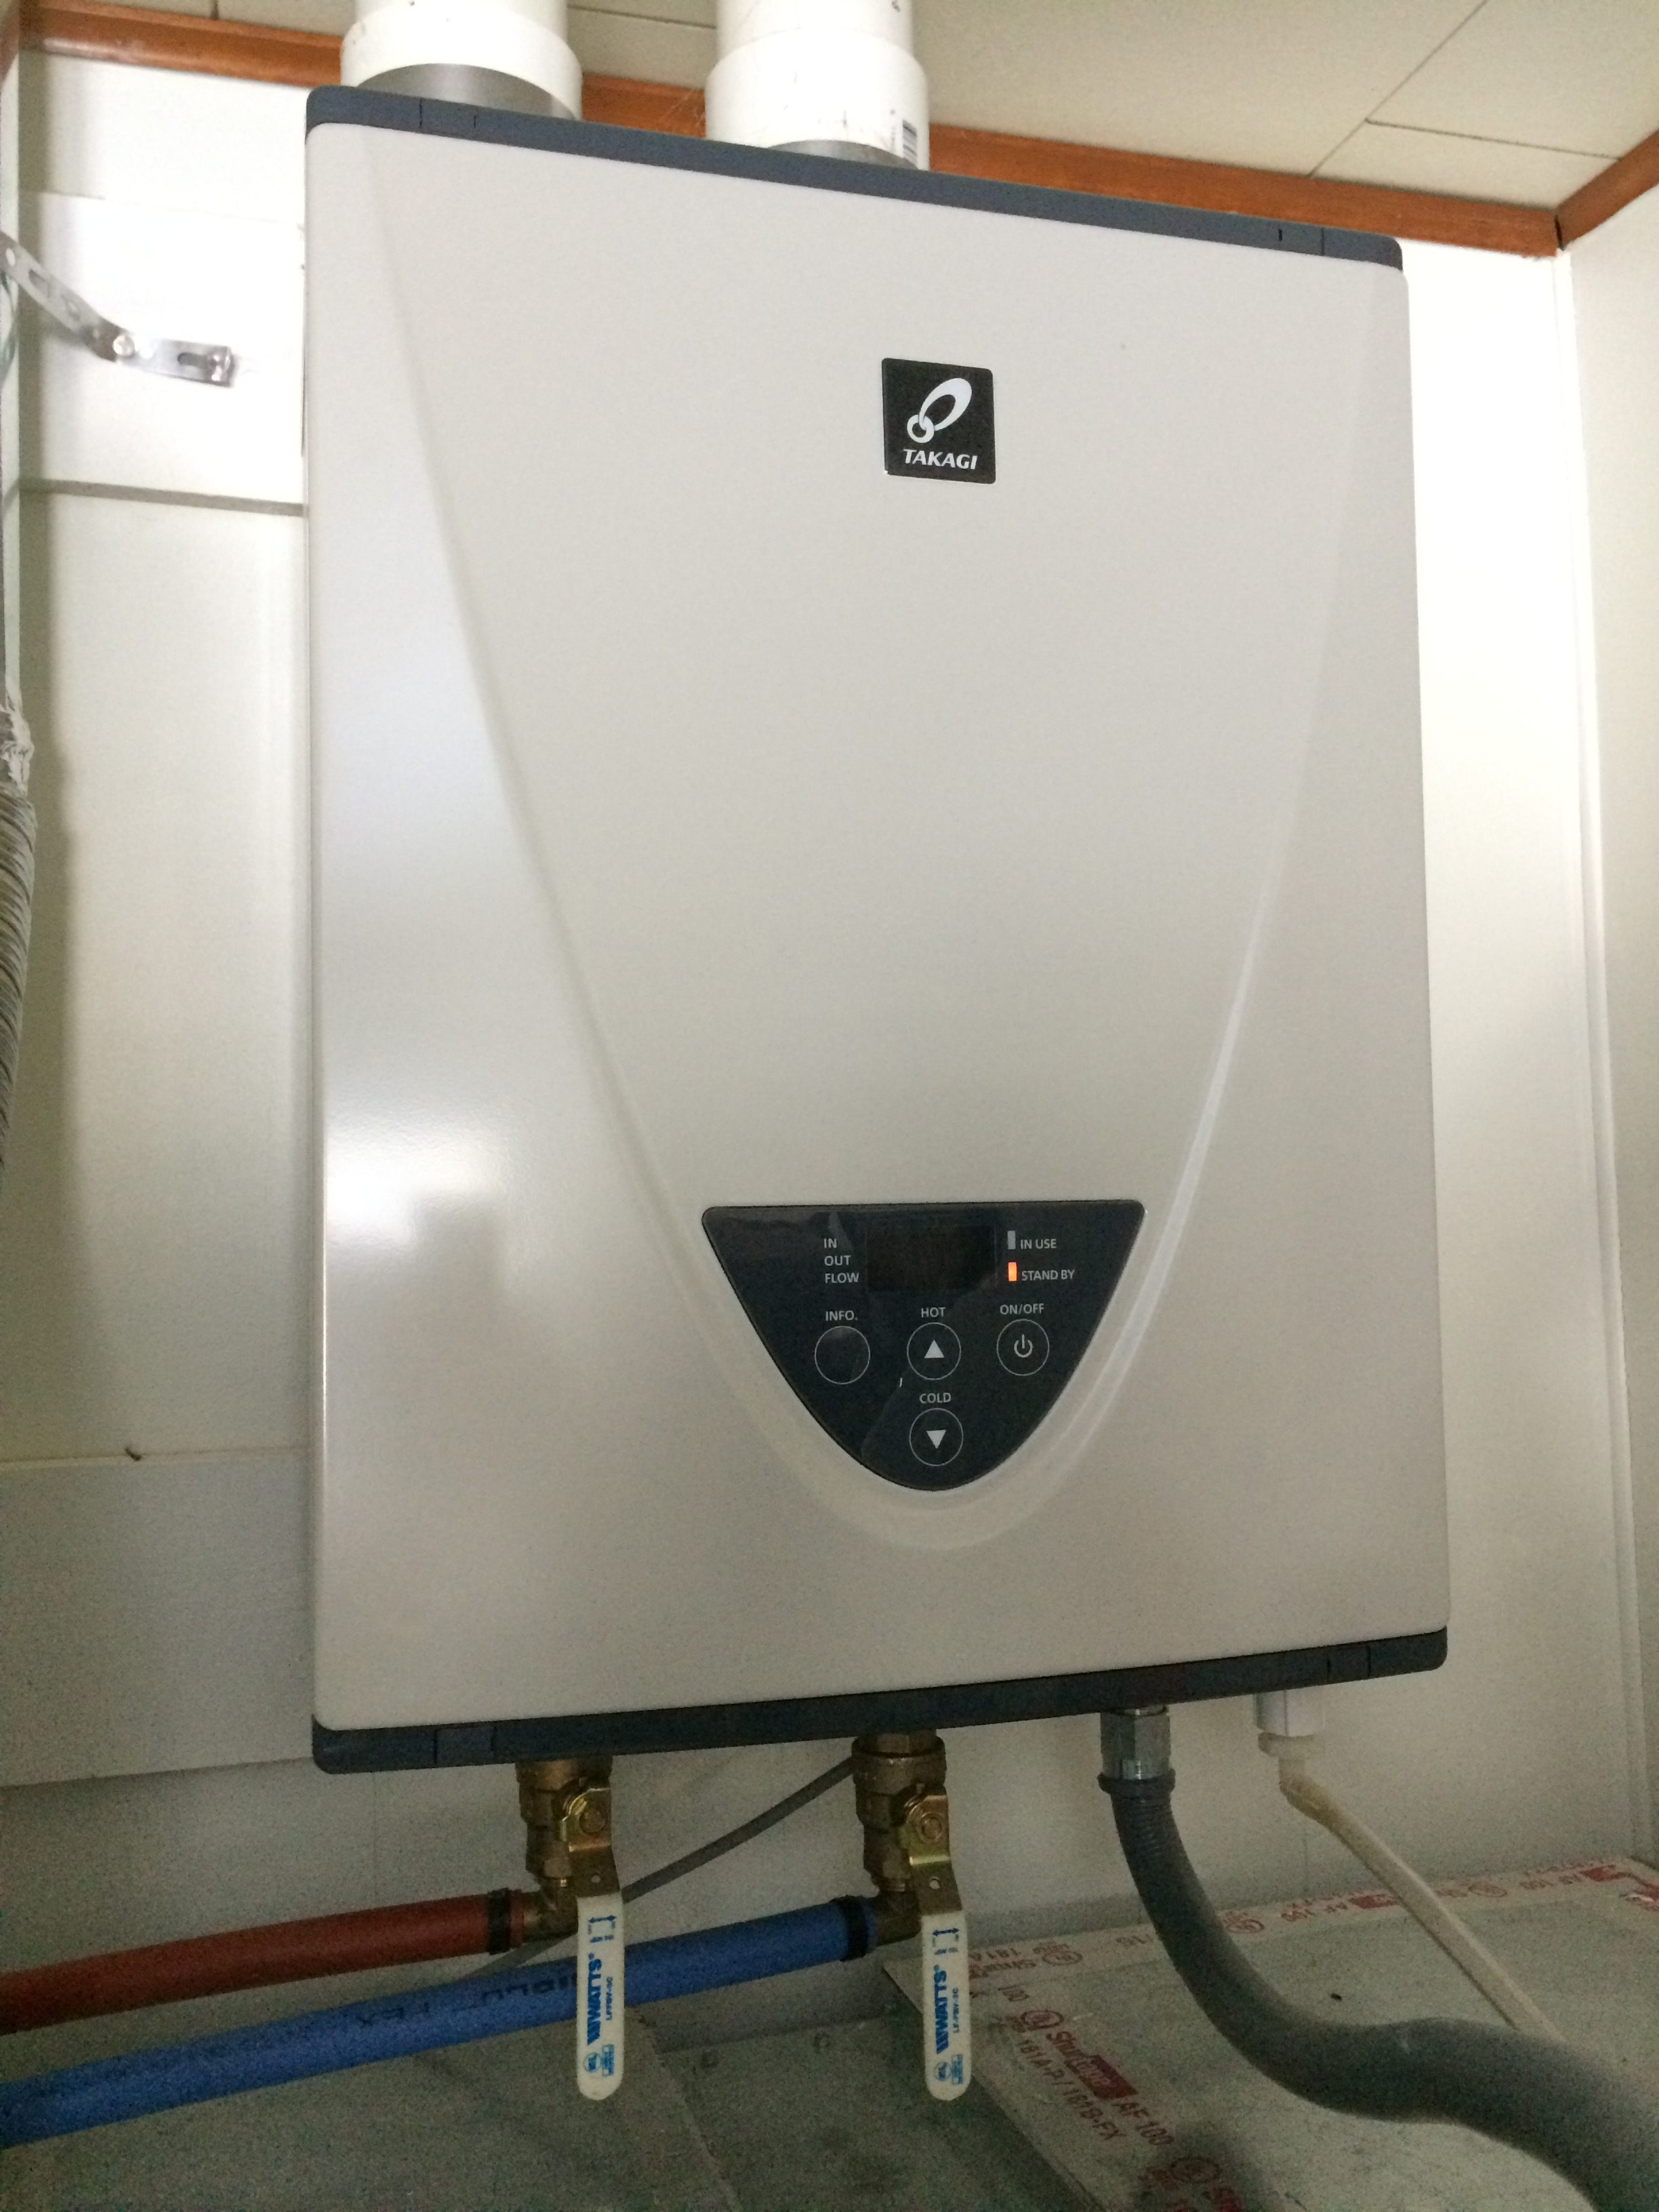 Takagi T-H3S-DV-P On Demand Tankless Water Heater